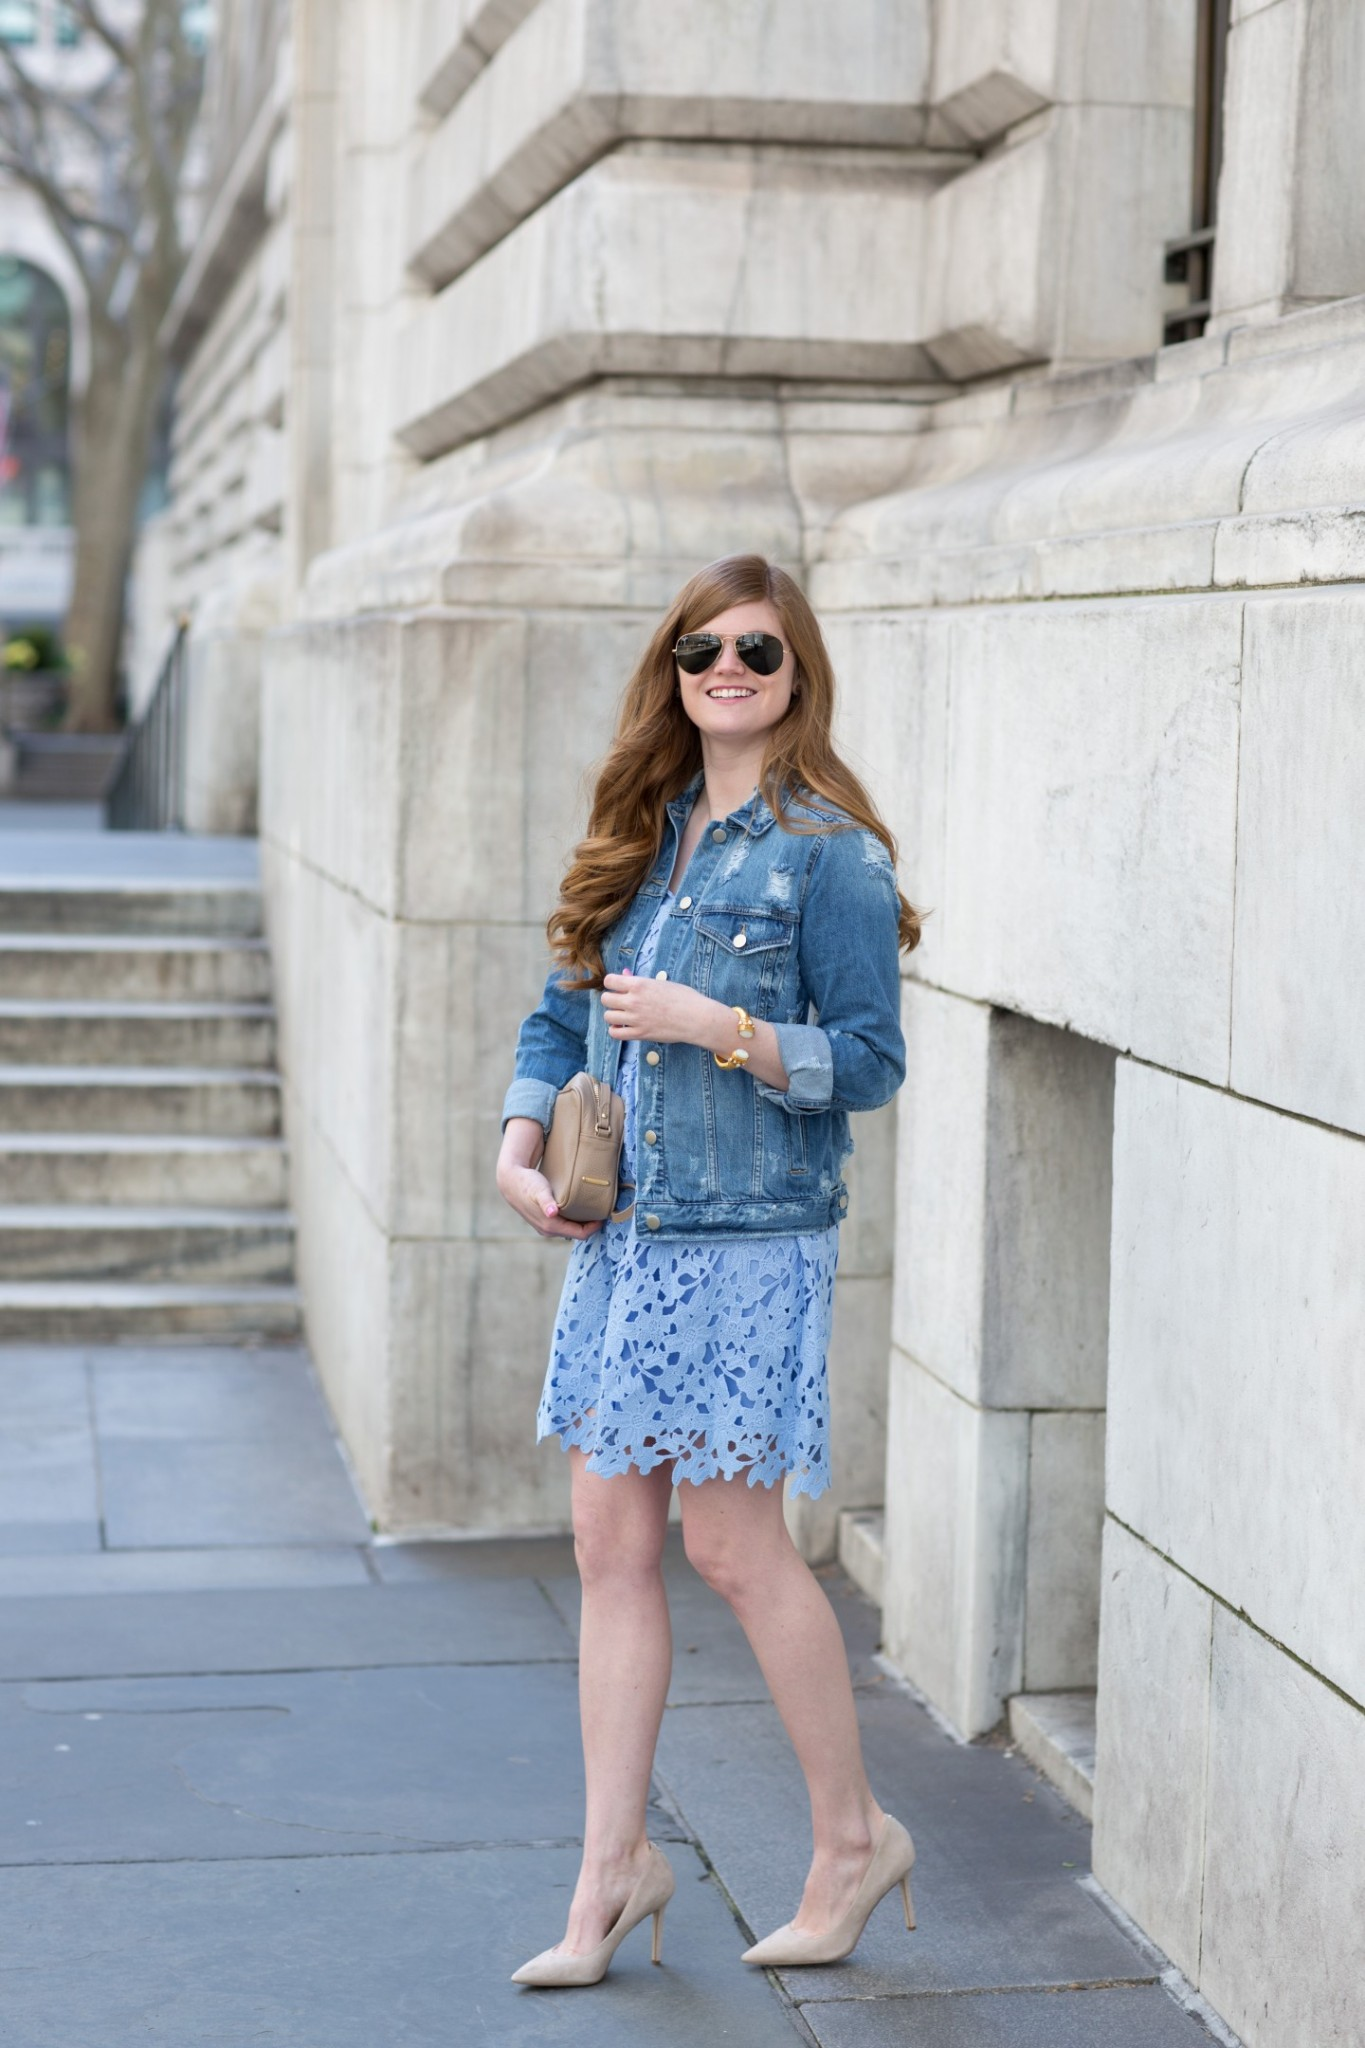 Lifestyle blogger Mollie Sheperdson shares an Easter outfit idea